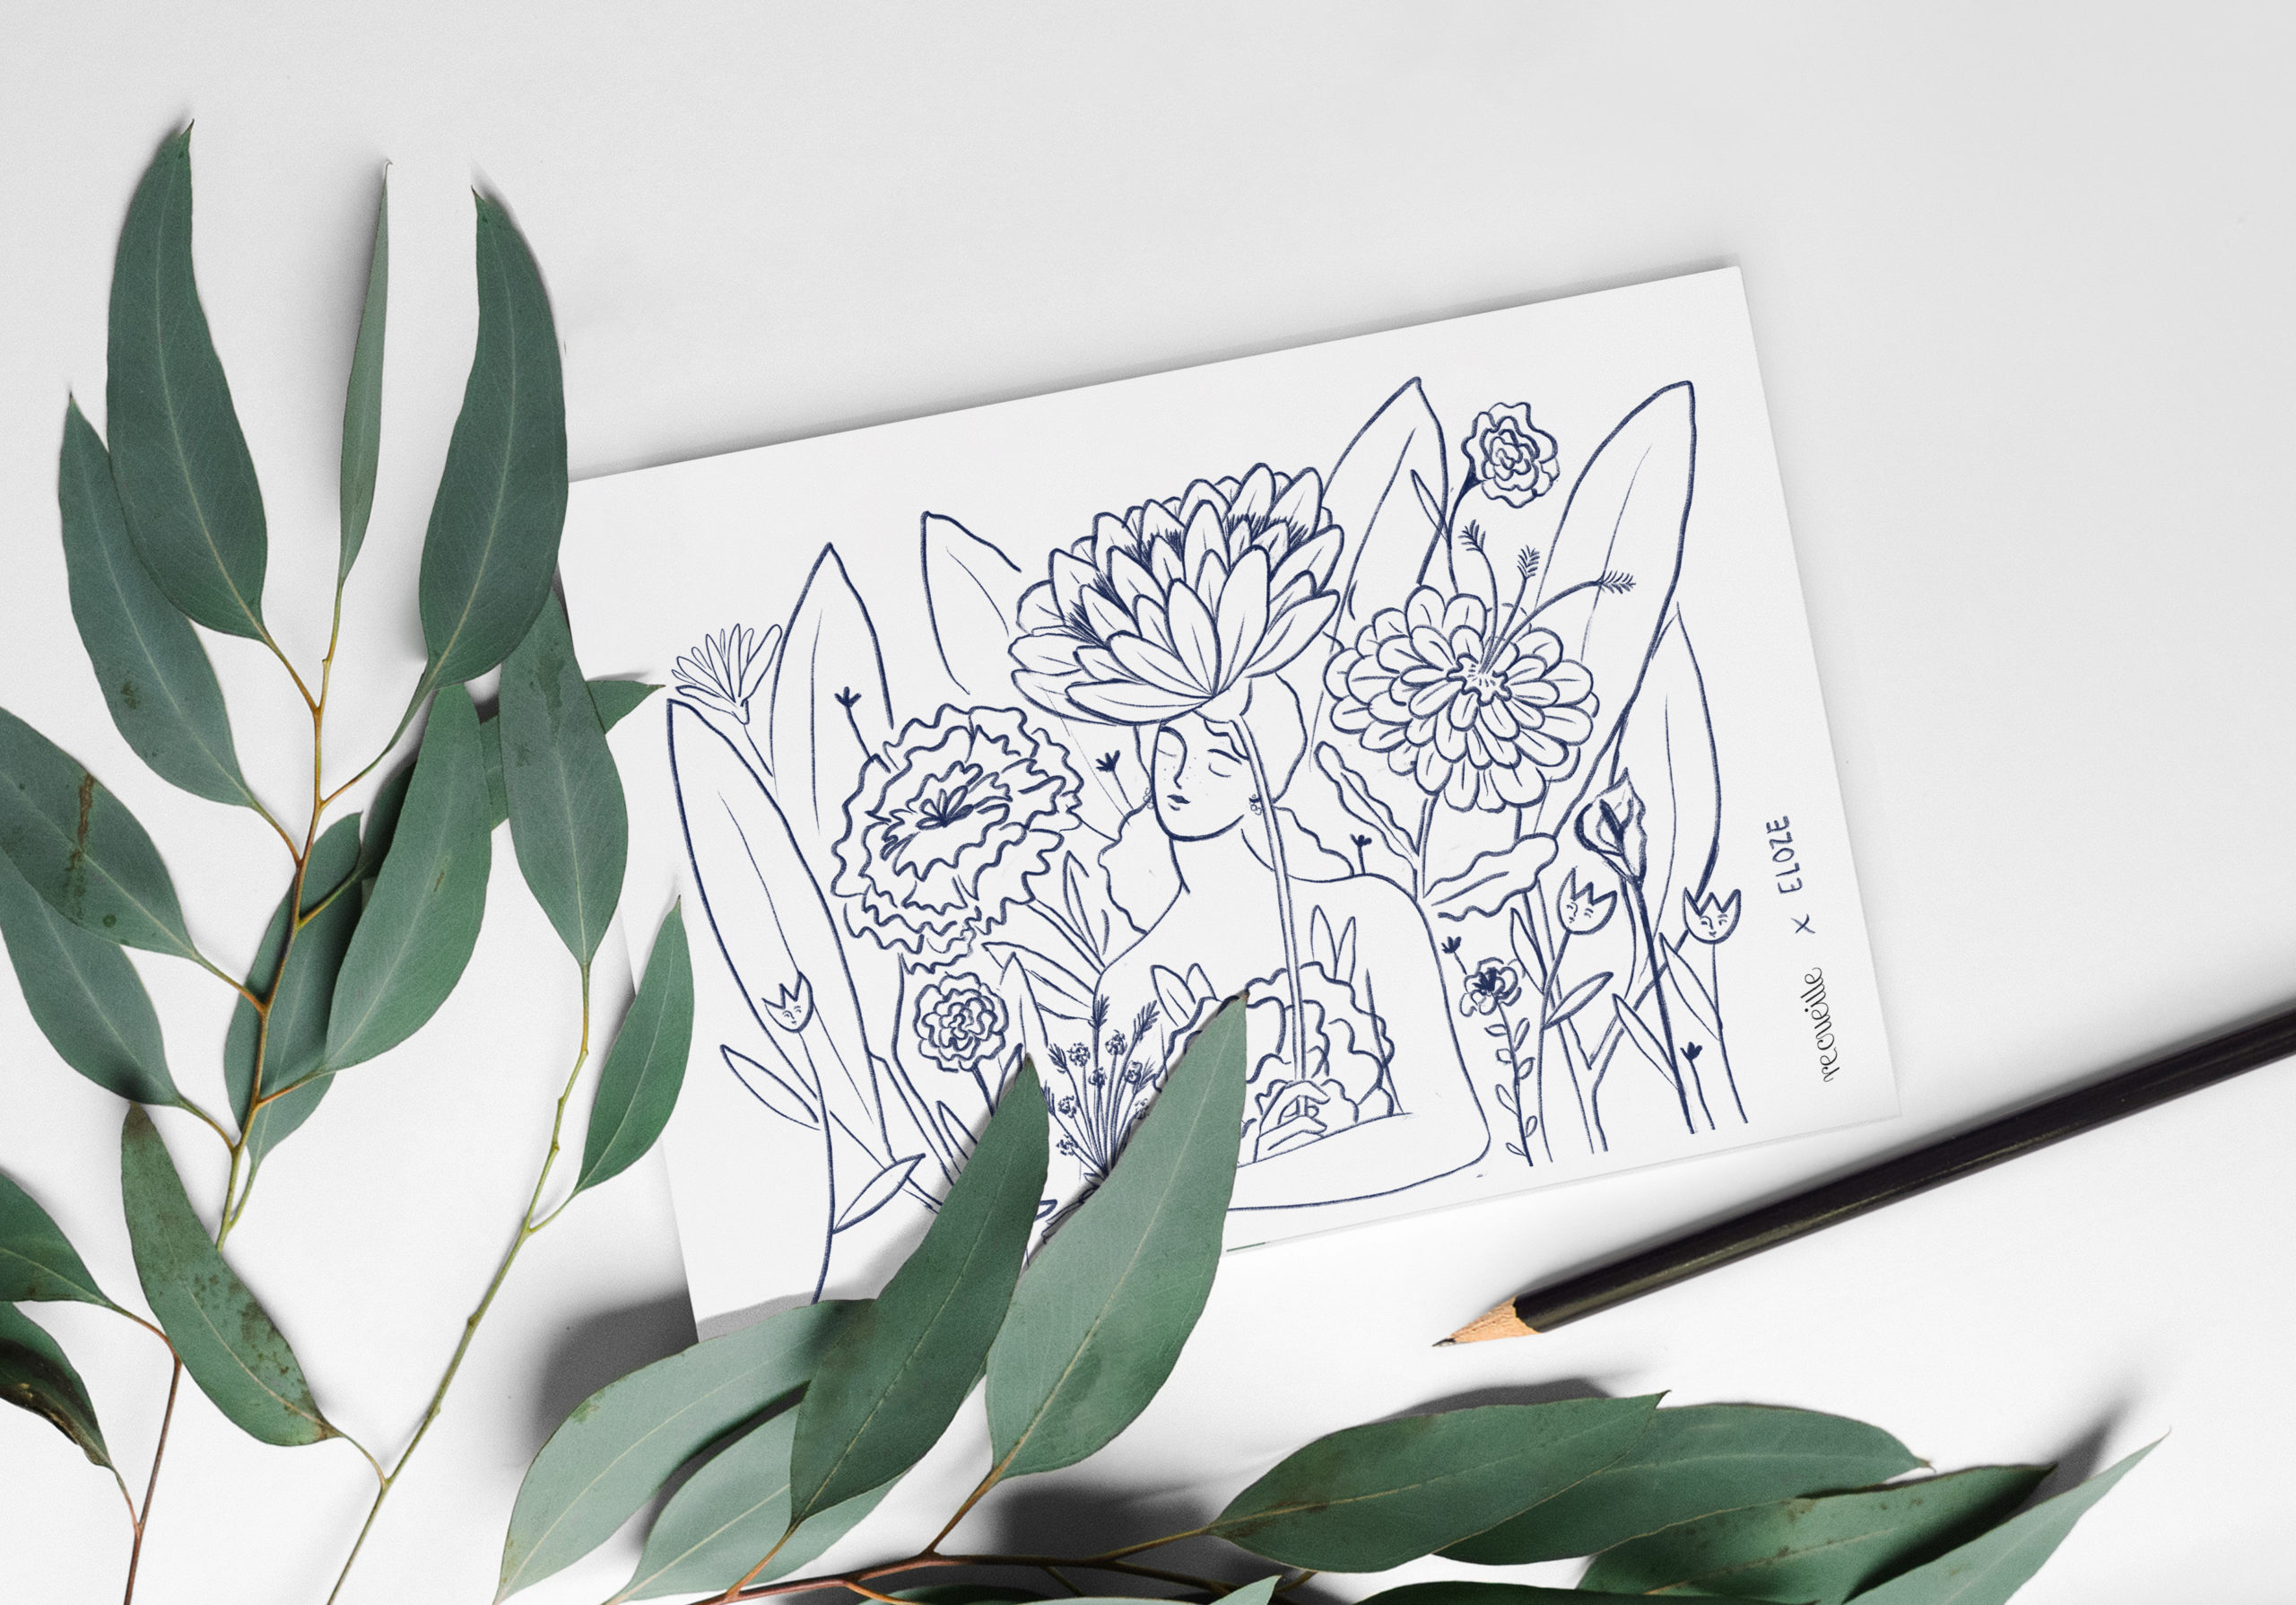 Mockup-croquis-recueille-x-eloze-large